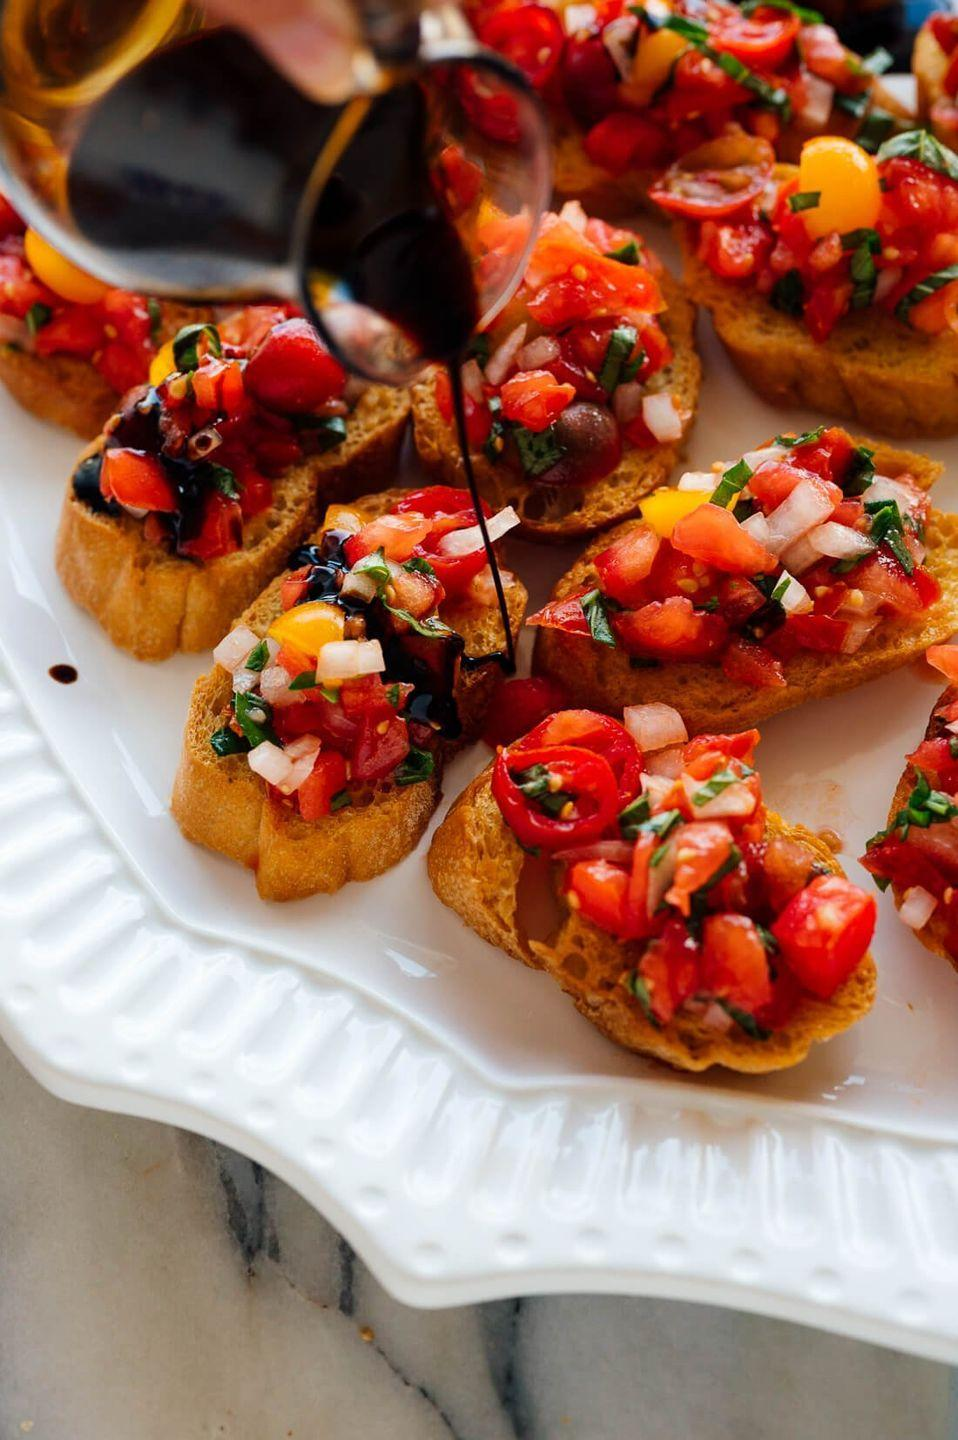 """<p>Serve these pretty crostini topped with marinated tomatoes for your next summer party. If you're planning to make them ahead of time, just be sure to keep the topping separate from the bread until you're ready to serve.<br></p><p><strong>Get the recipe at <a href=""""https://cookieandkate.com/tomato-basil-bruschetta-recipe/"""" rel=""""nofollow noopener"""" target=""""_blank"""" data-ylk=""""slk:Cookie + Kate"""" class=""""link rapid-noclick-resp"""">Cookie + Kate</a>.</strong></p><p><a class=""""link rapid-noclick-resp"""" href=""""https://go.redirectingat.com?id=74968X1596630&url=https%3A%2F%2Fwww.walmart.com%2Fsearch%2F%3Fquery%3Dpioneer%2Bwoman%2Bserving%2Bplates&sref=https%3A%2F%2Fwww.thepioneerwoman.com%2Ffood-cooking%2Fmeals-menus%2Fg36500577%2Ftomato-recipes%2F"""" rel=""""nofollow noopener"""" target=""""_blank"""" data-ylk=""""slk:SHOP SERVING PLATES"""">SHOP SERVING PLATES</a></p>"""